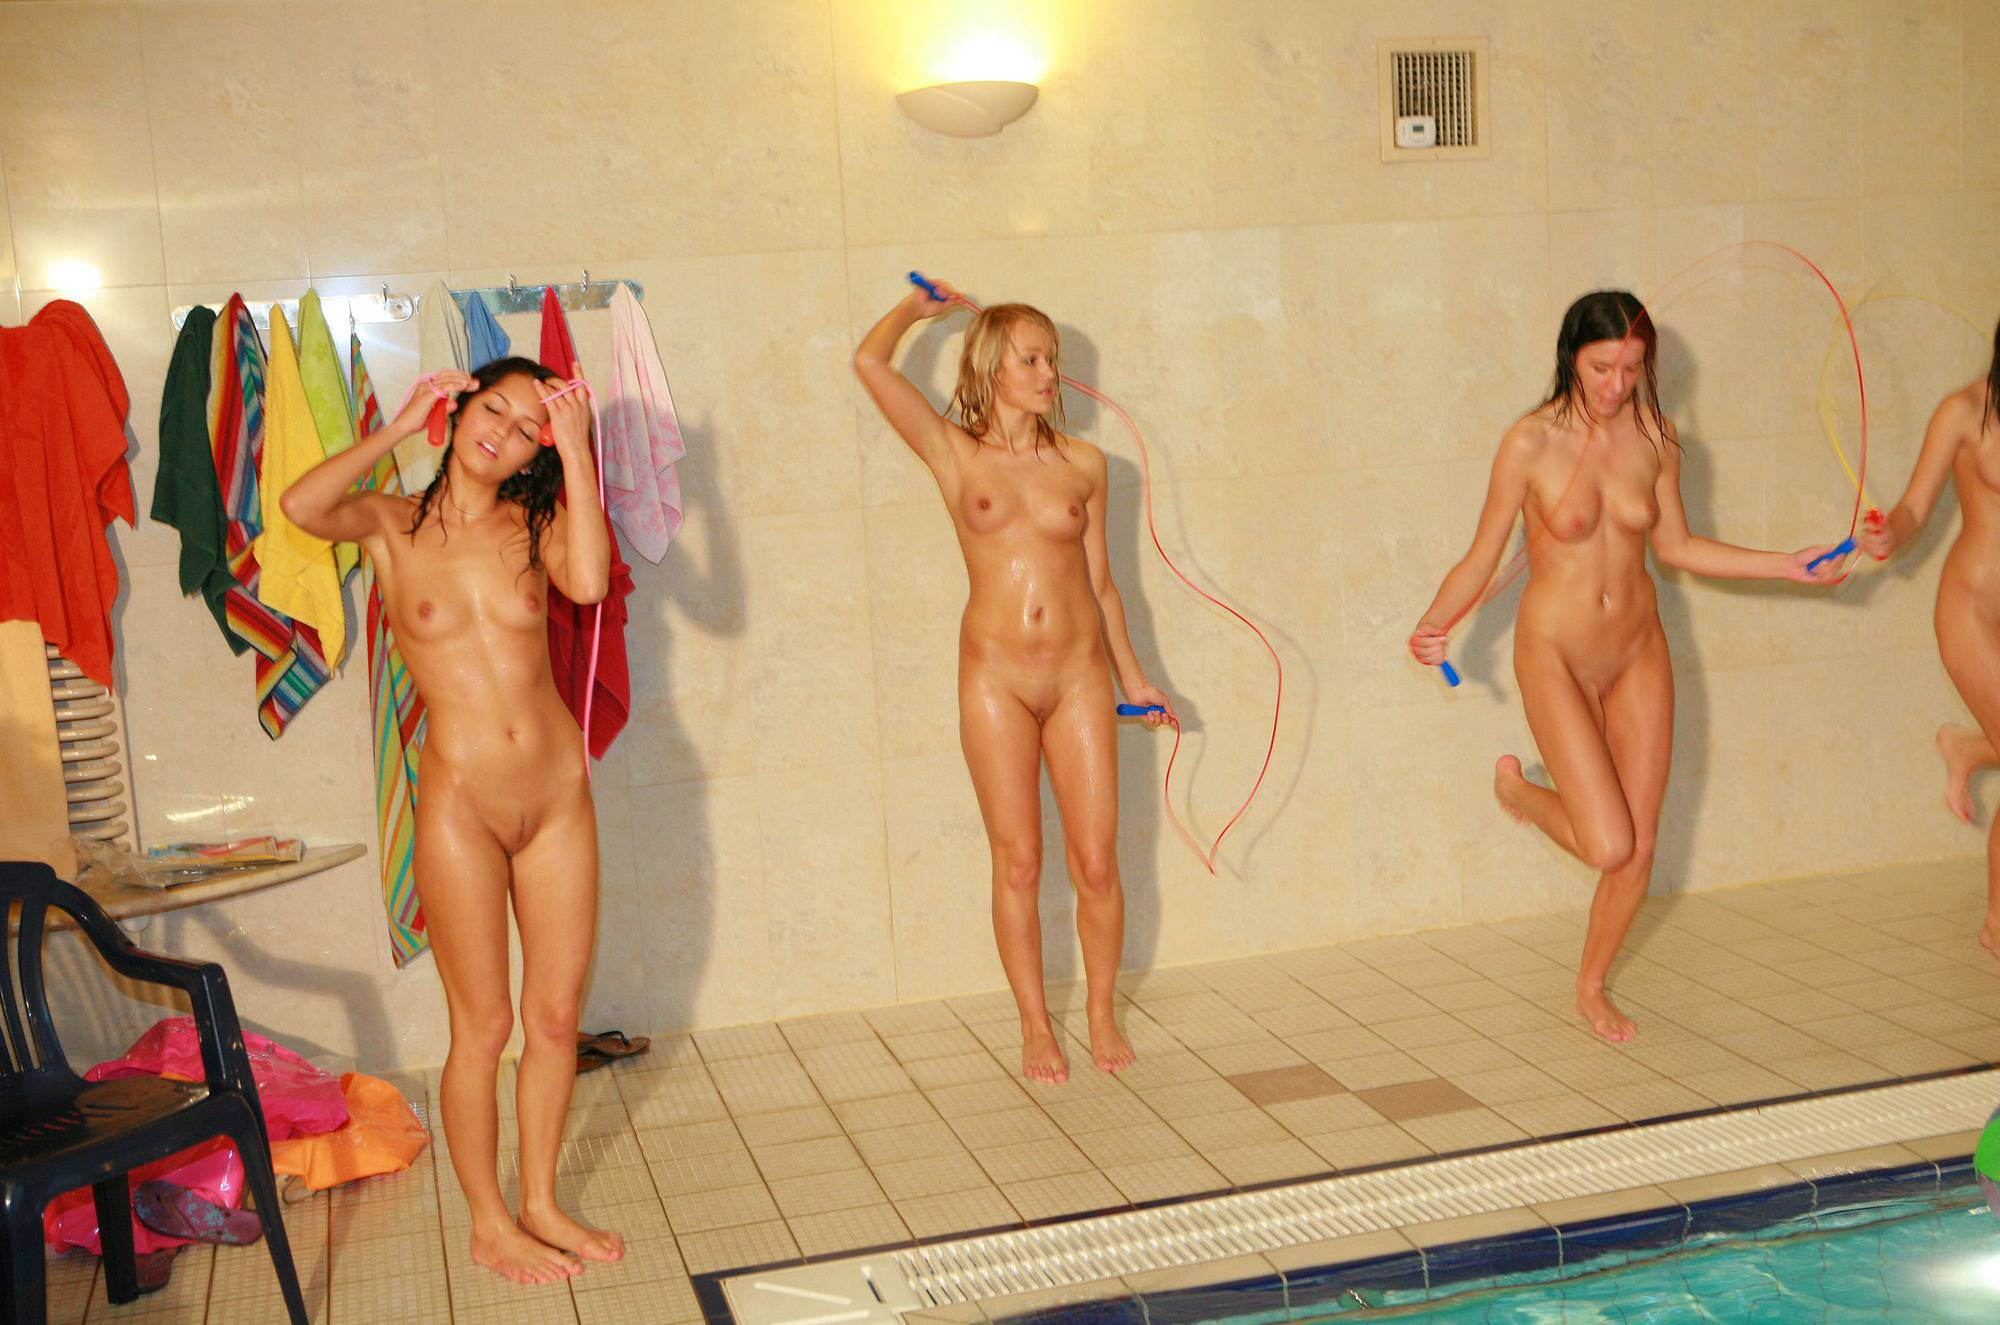 Pure Nudism Photos-Girls Pool Party Games - 1